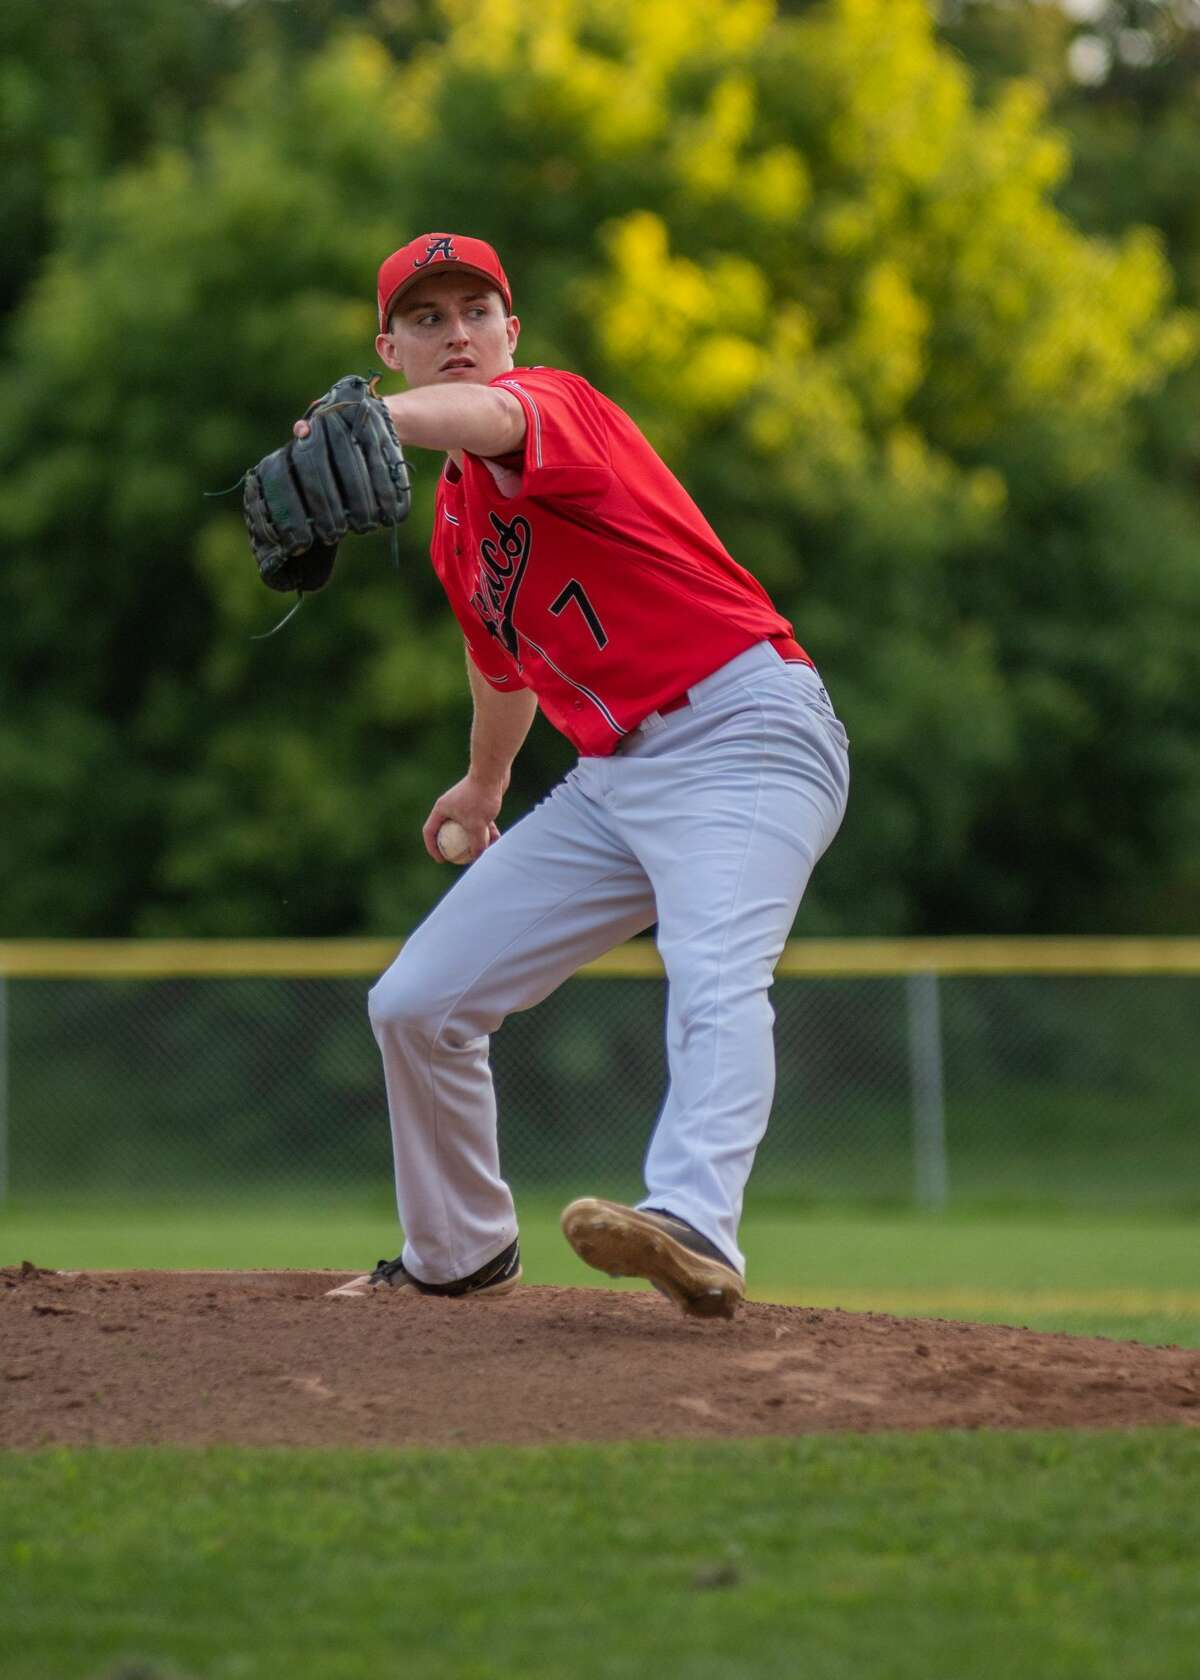 Ryan Lambert delievers a pitch for the Albany Athletics.